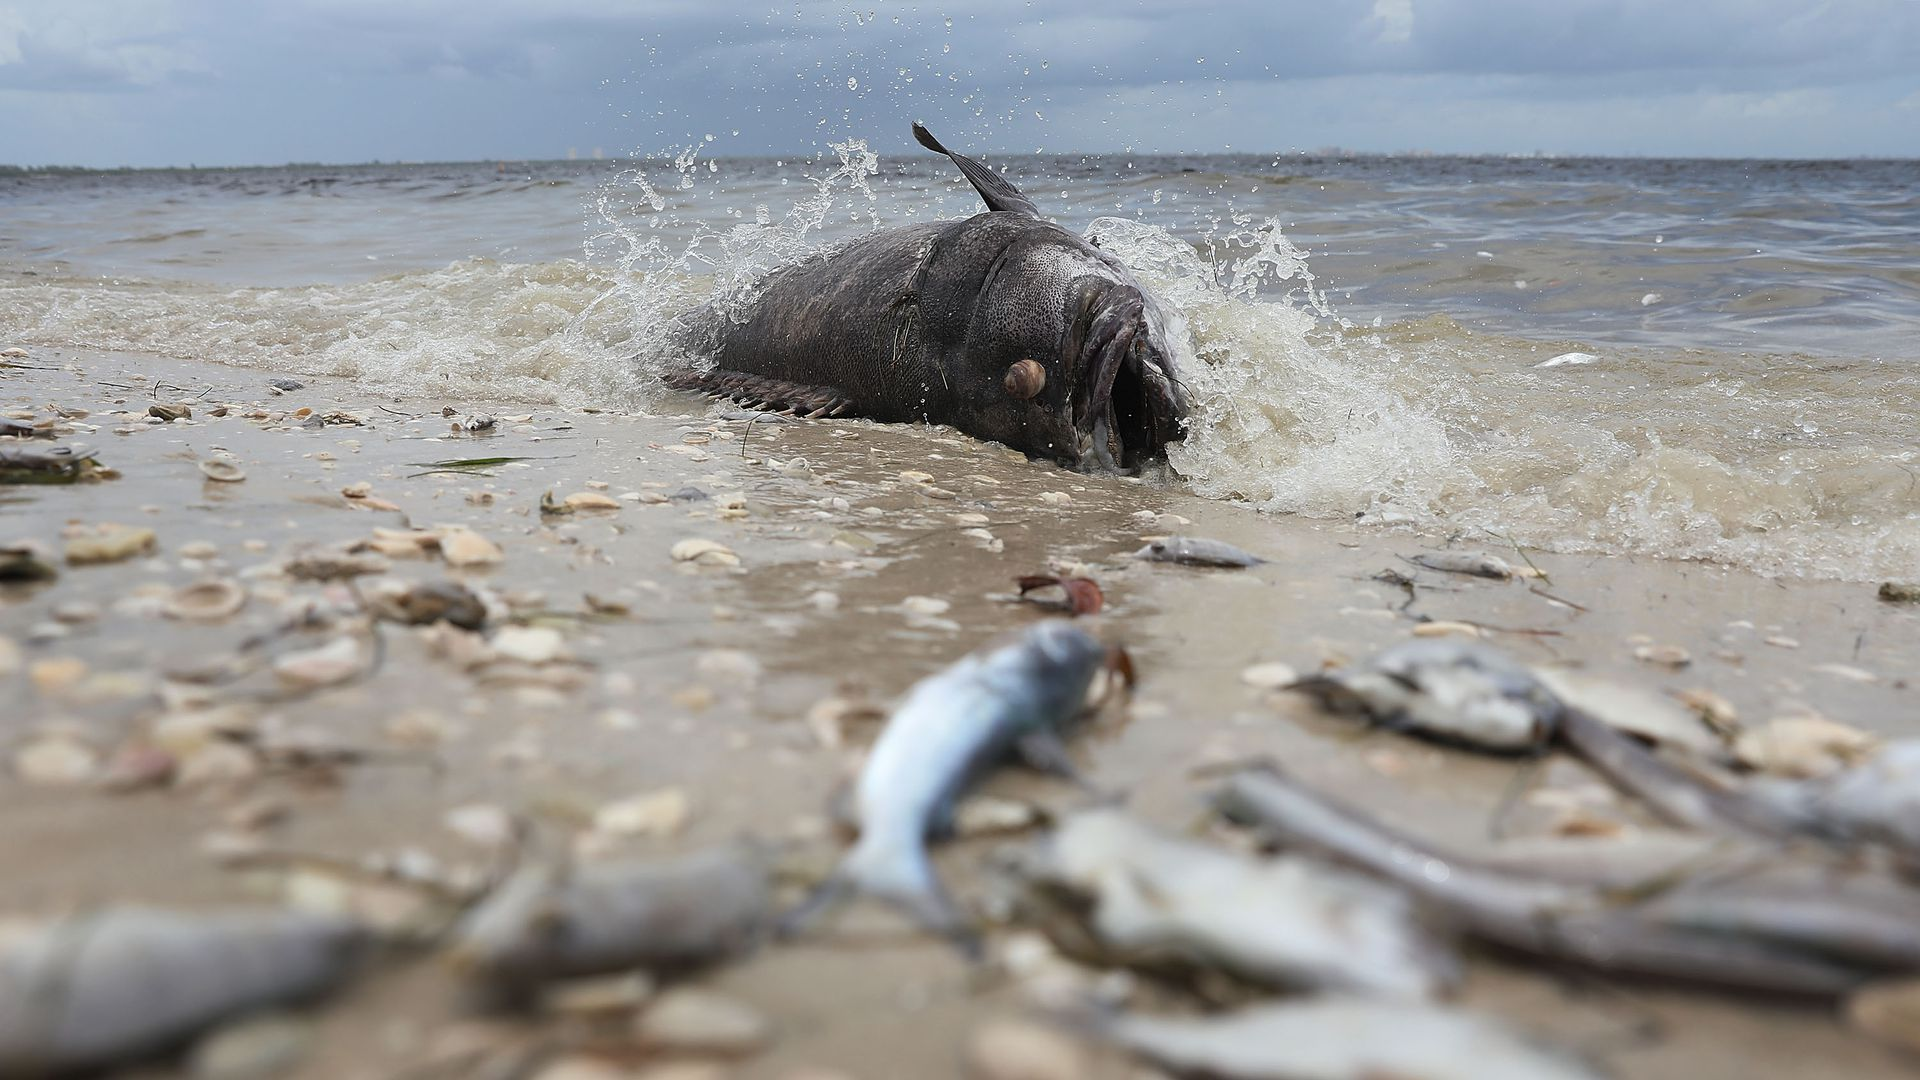 A Goliath grouper and other fish are seen washed ashore the Sanibel causeway after dying in a red tide on August 1, 2018 in Sanibel, Florida.